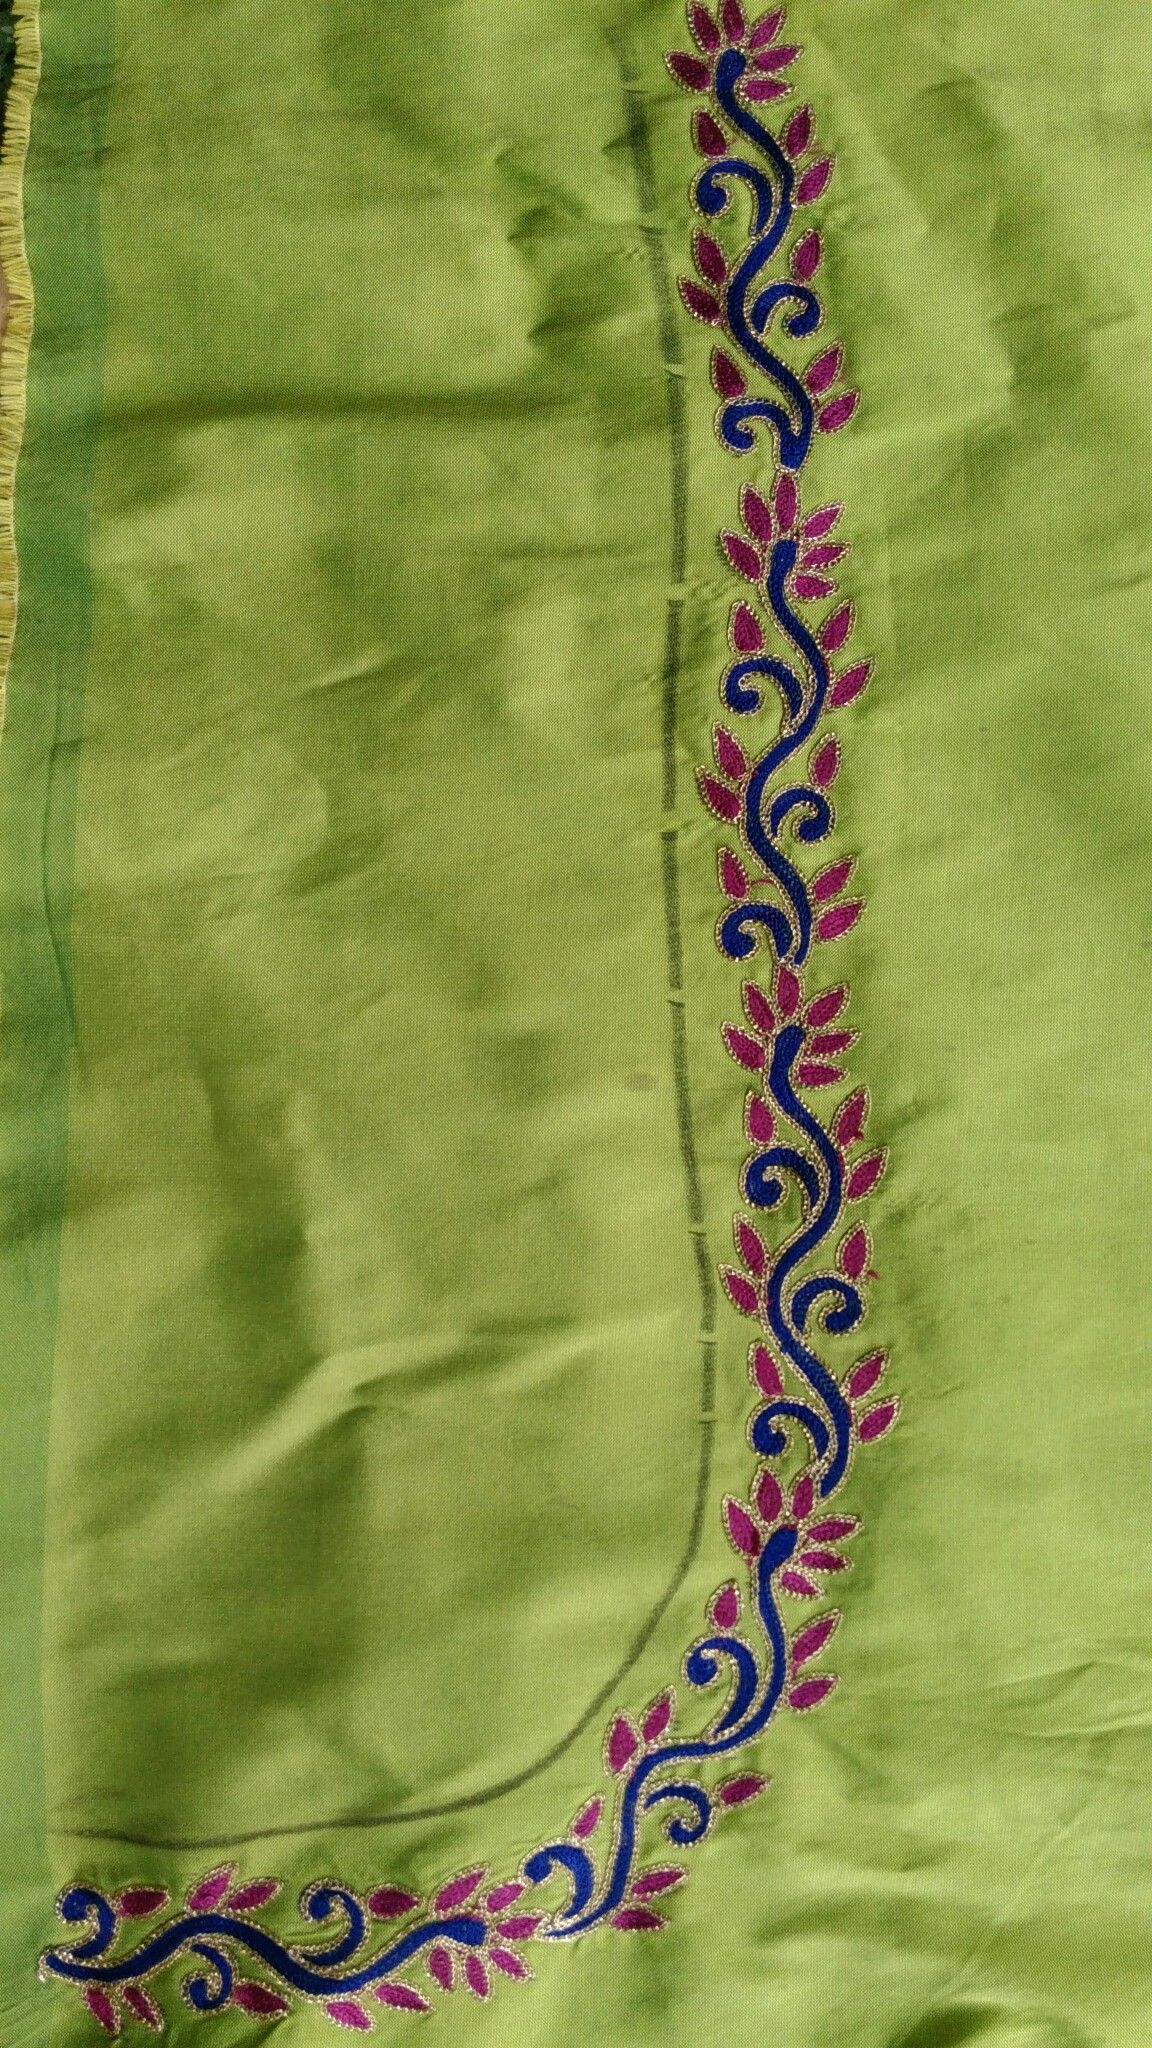 Pin By Beautiful On Blouse Designs In 2019 Blouse Designs Blouse